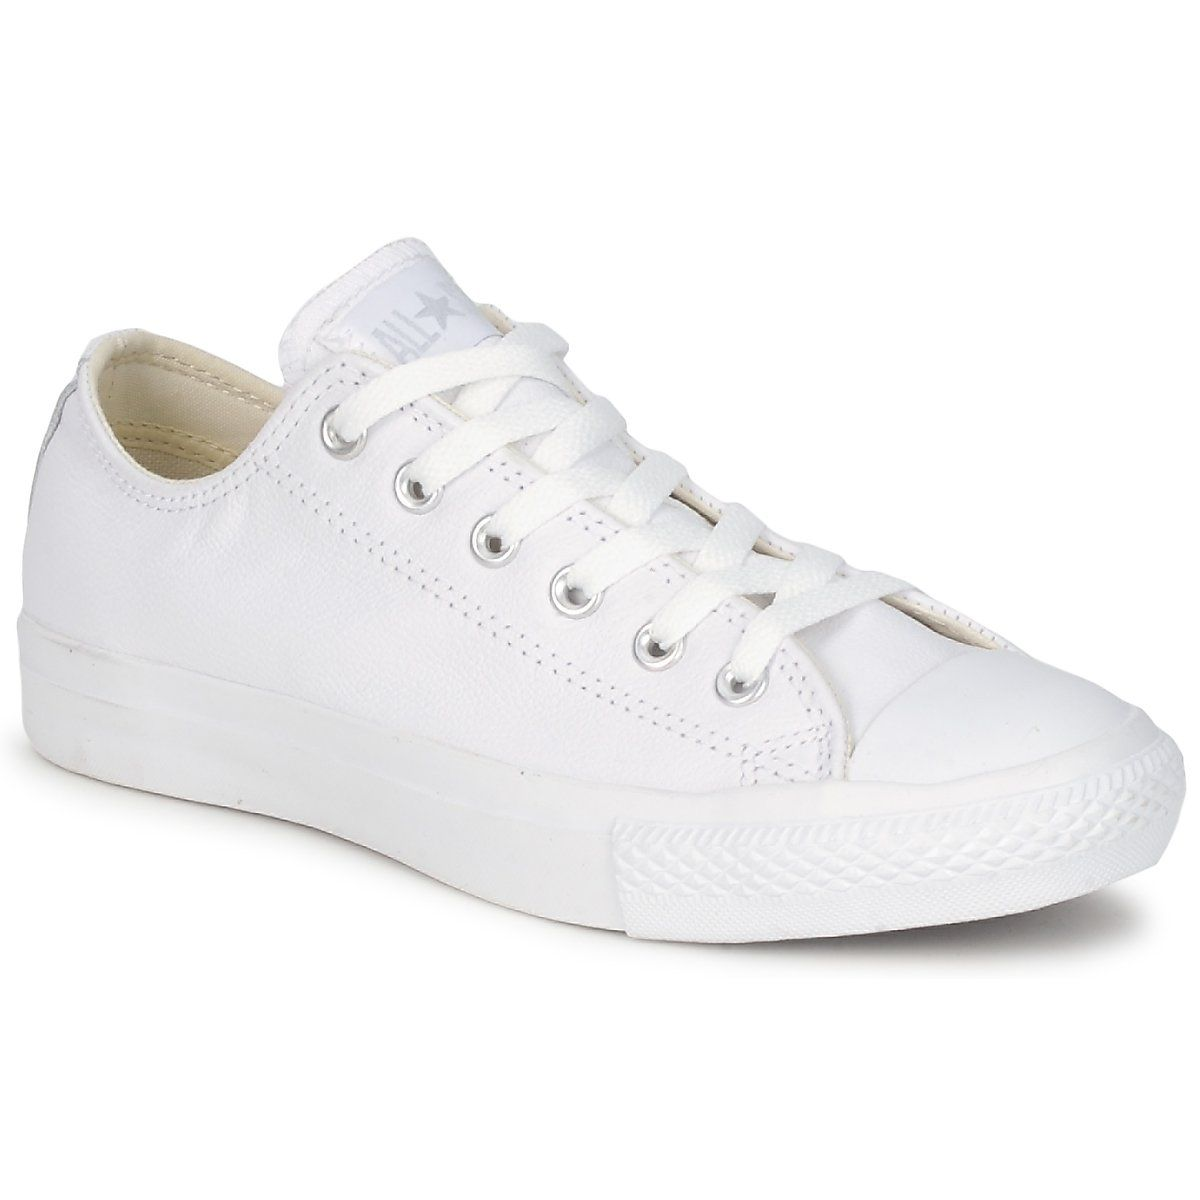 7a40cf7af830a Converse ALL STAR MONOCHROME CUIR OX Weiss